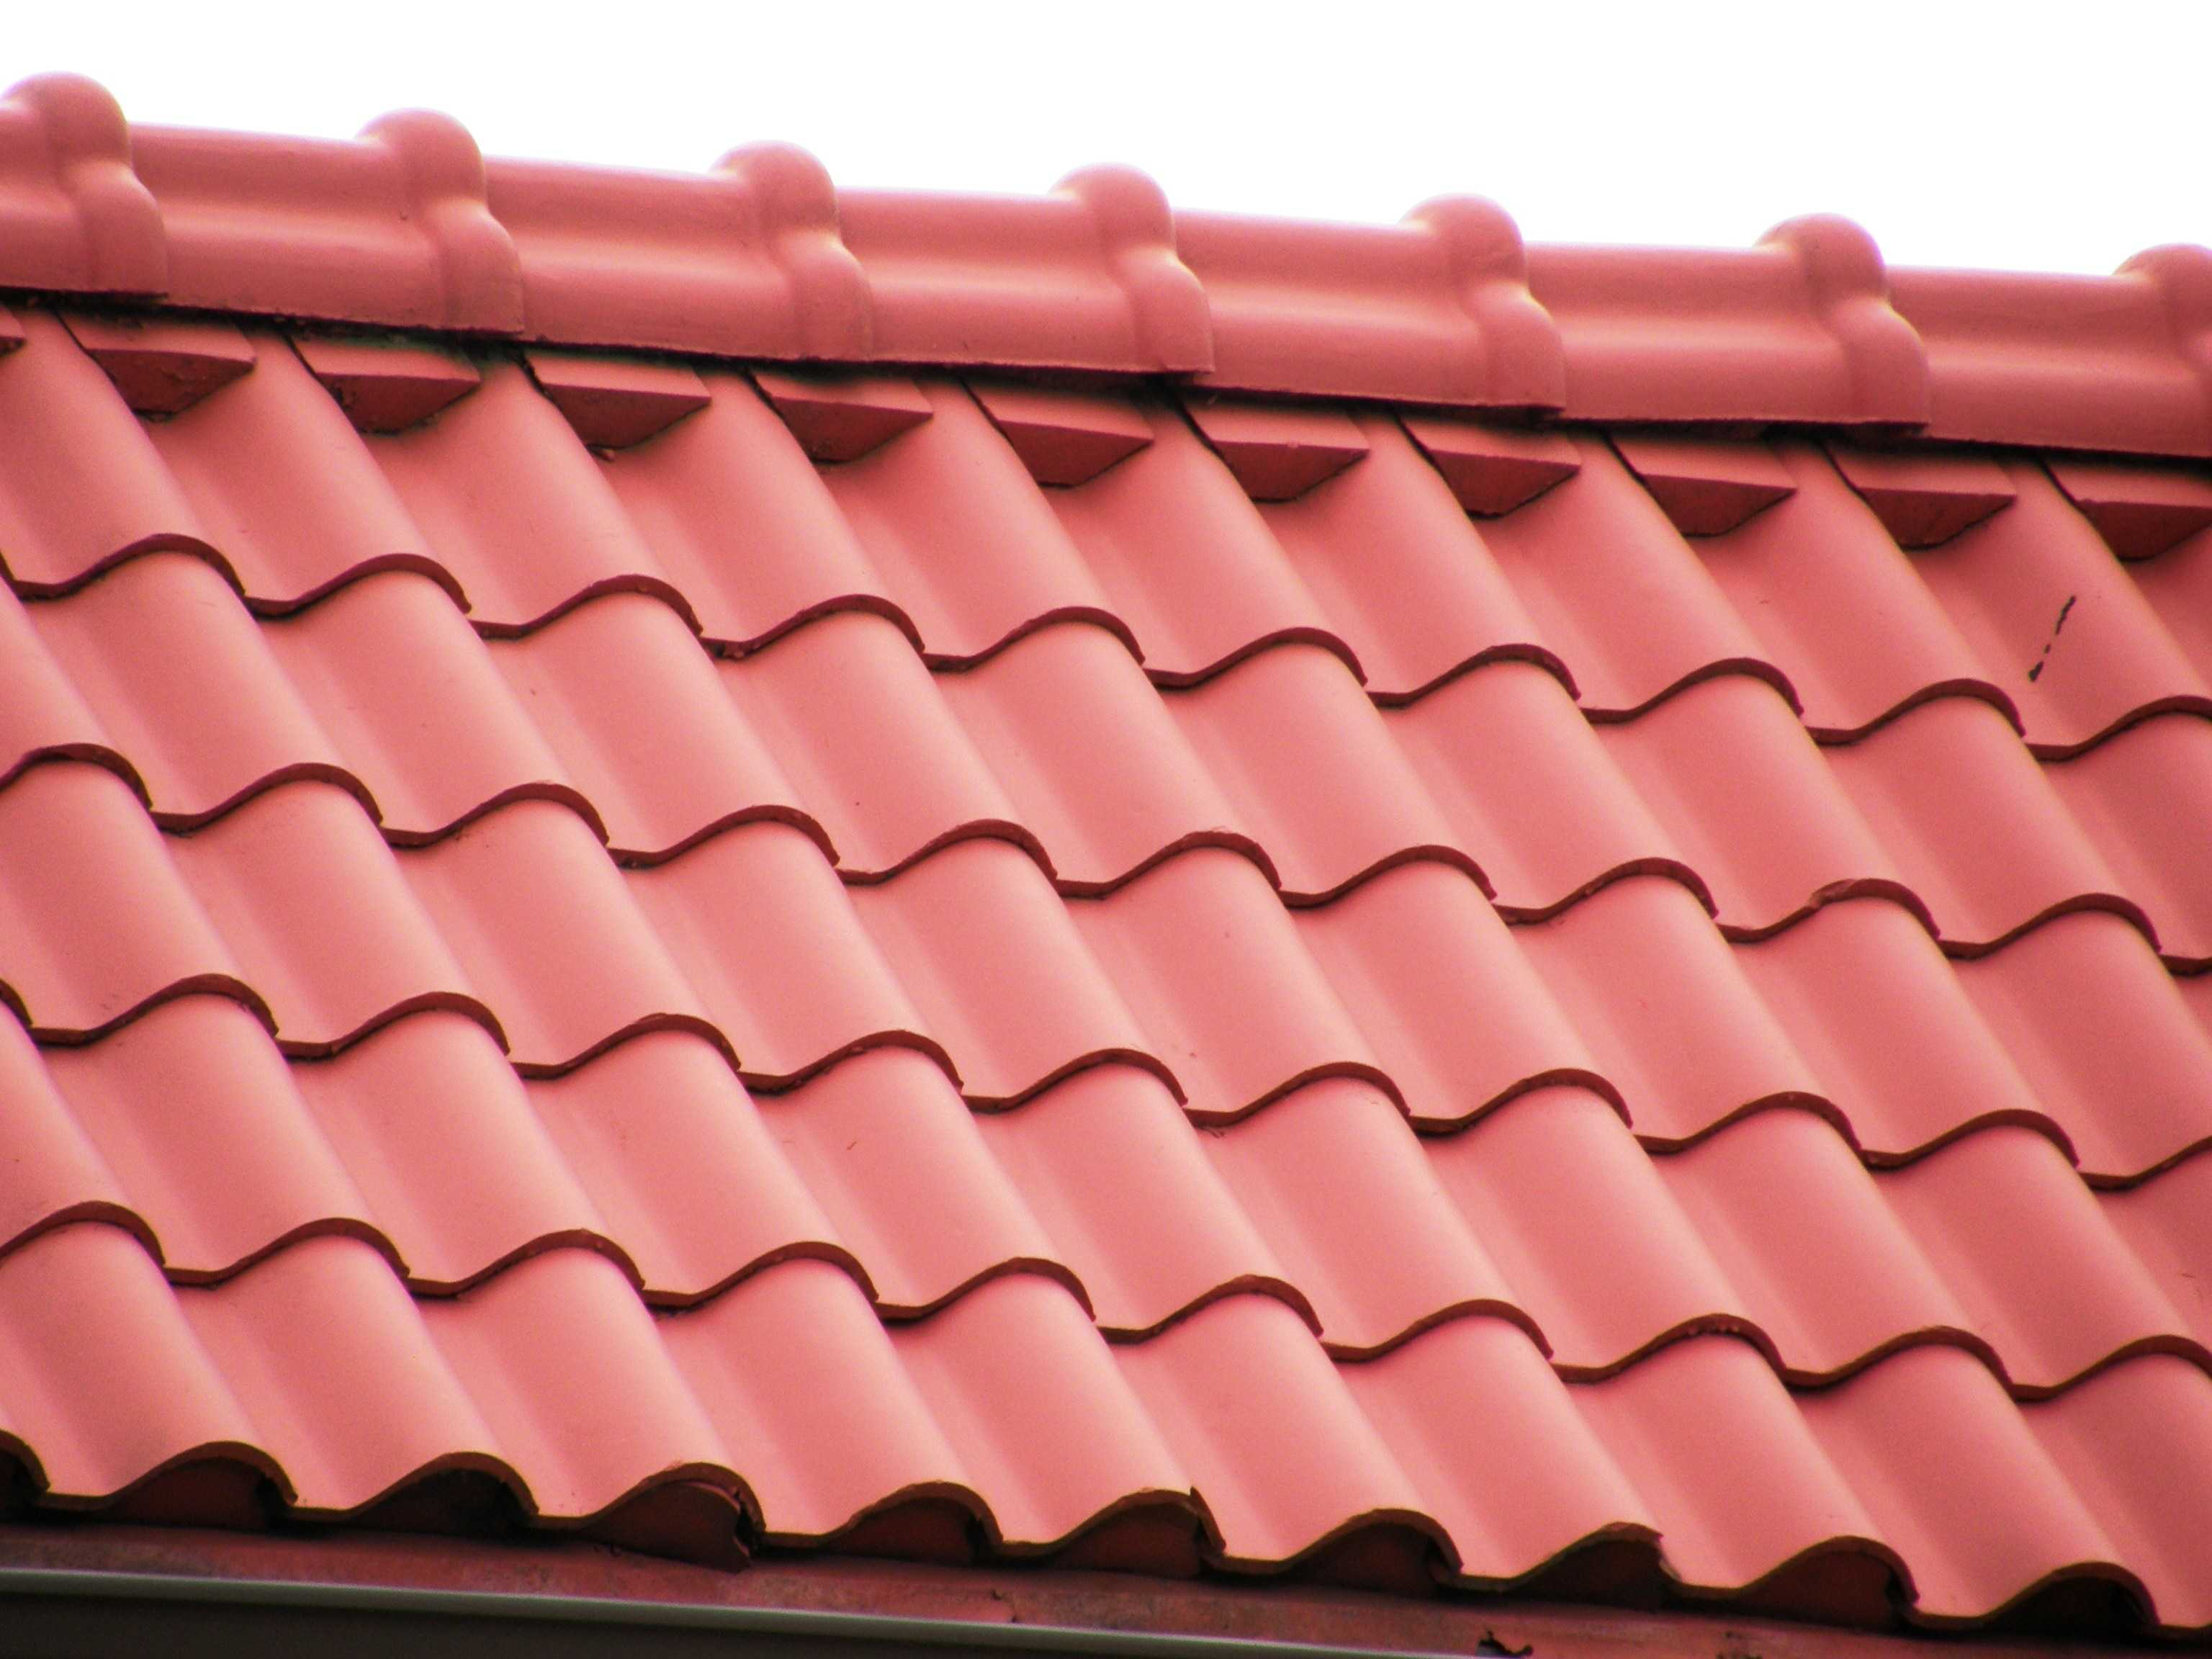 OLYMPUS DIGITAL CAMERA - The Best Roofing Supplies For Your House